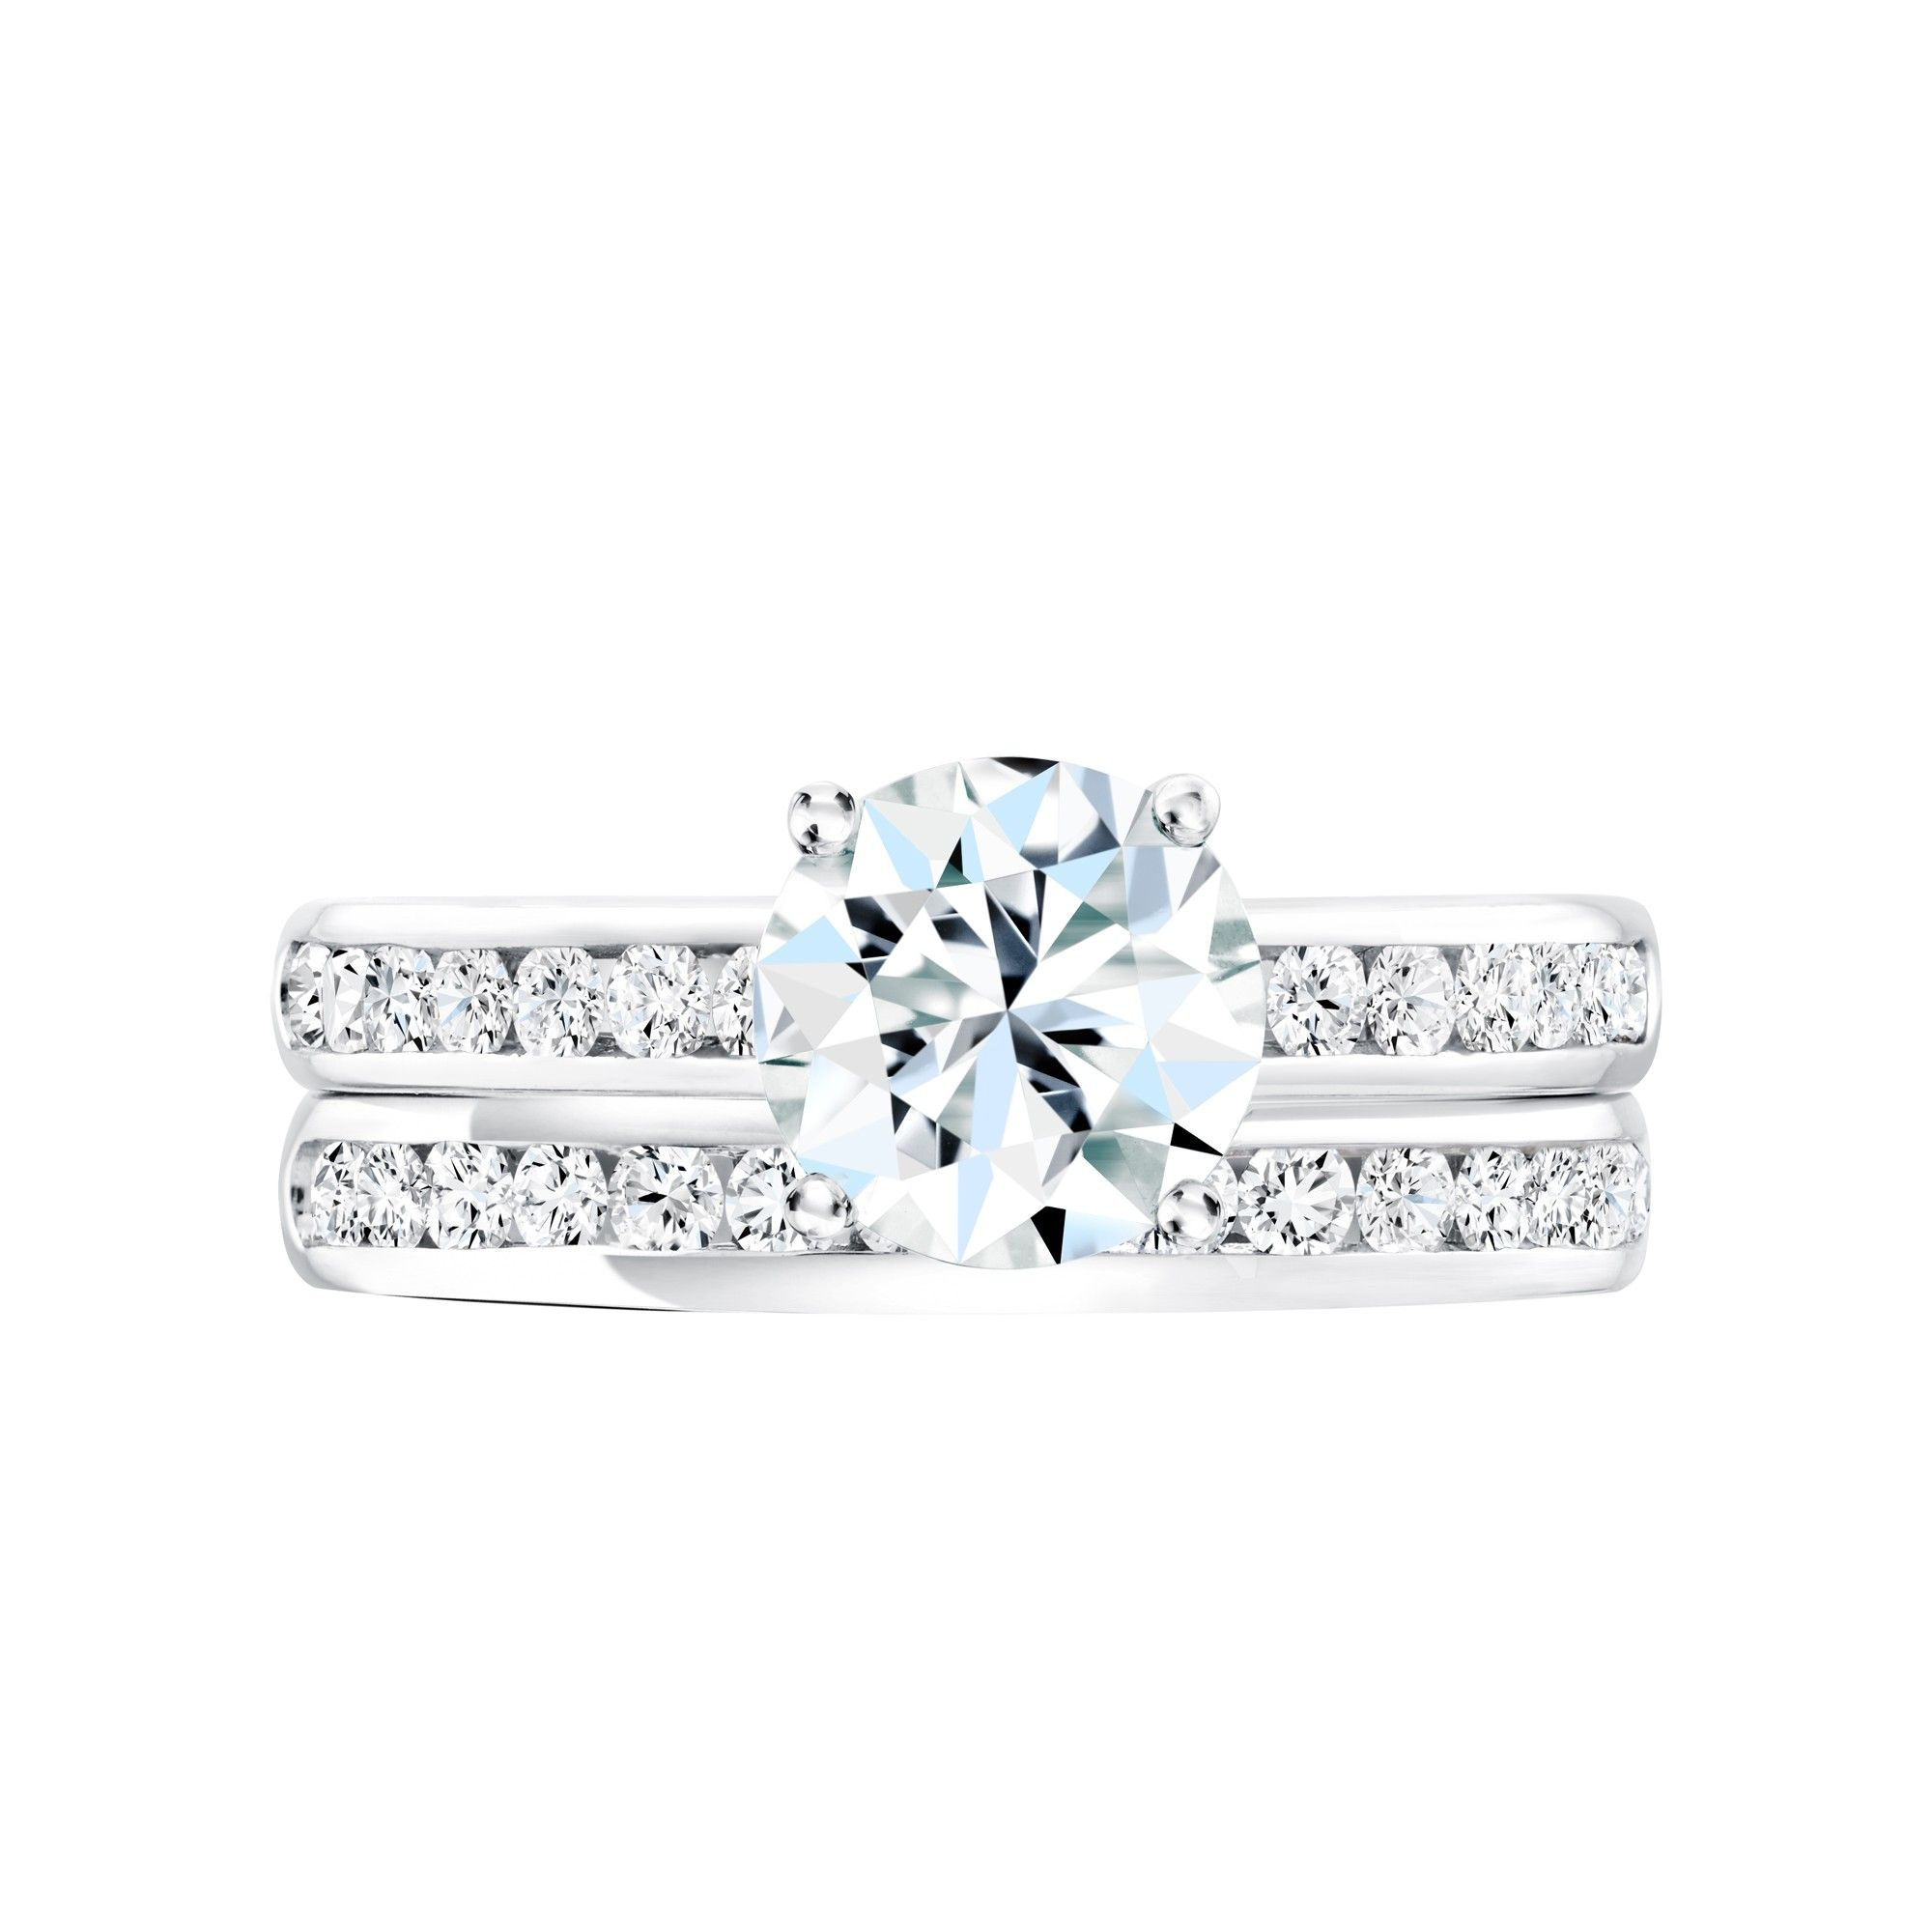 Birks Blue Channel Collection Diamond Solitaire Engagement Ring In 18kt White Gold Channel Engagement Rings Engagement Rings Engagement Ring Inspiration